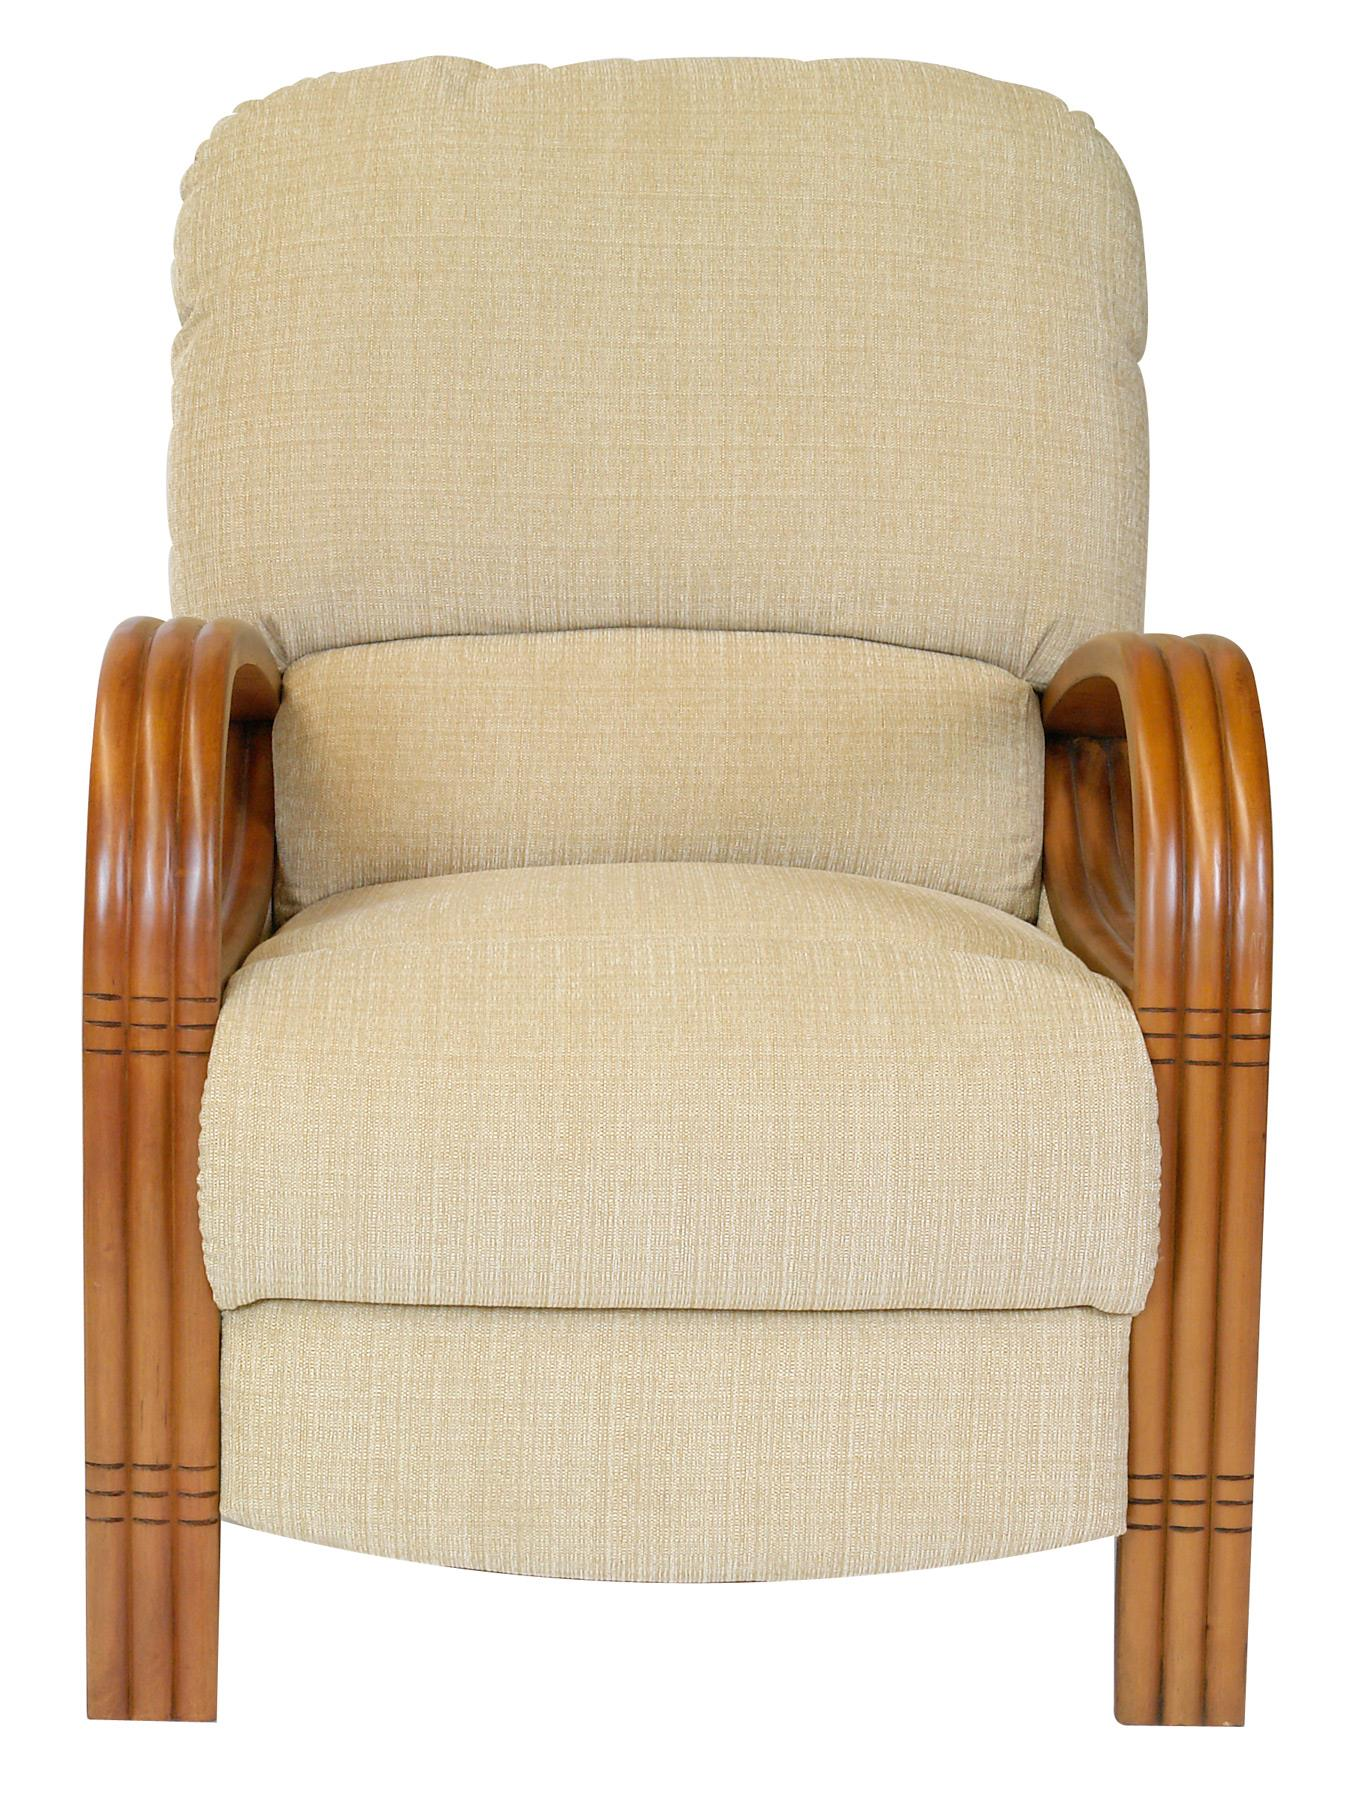 Synergy Home Furnishings Bailey Recliner   Item Number: 896 86 BAILEY